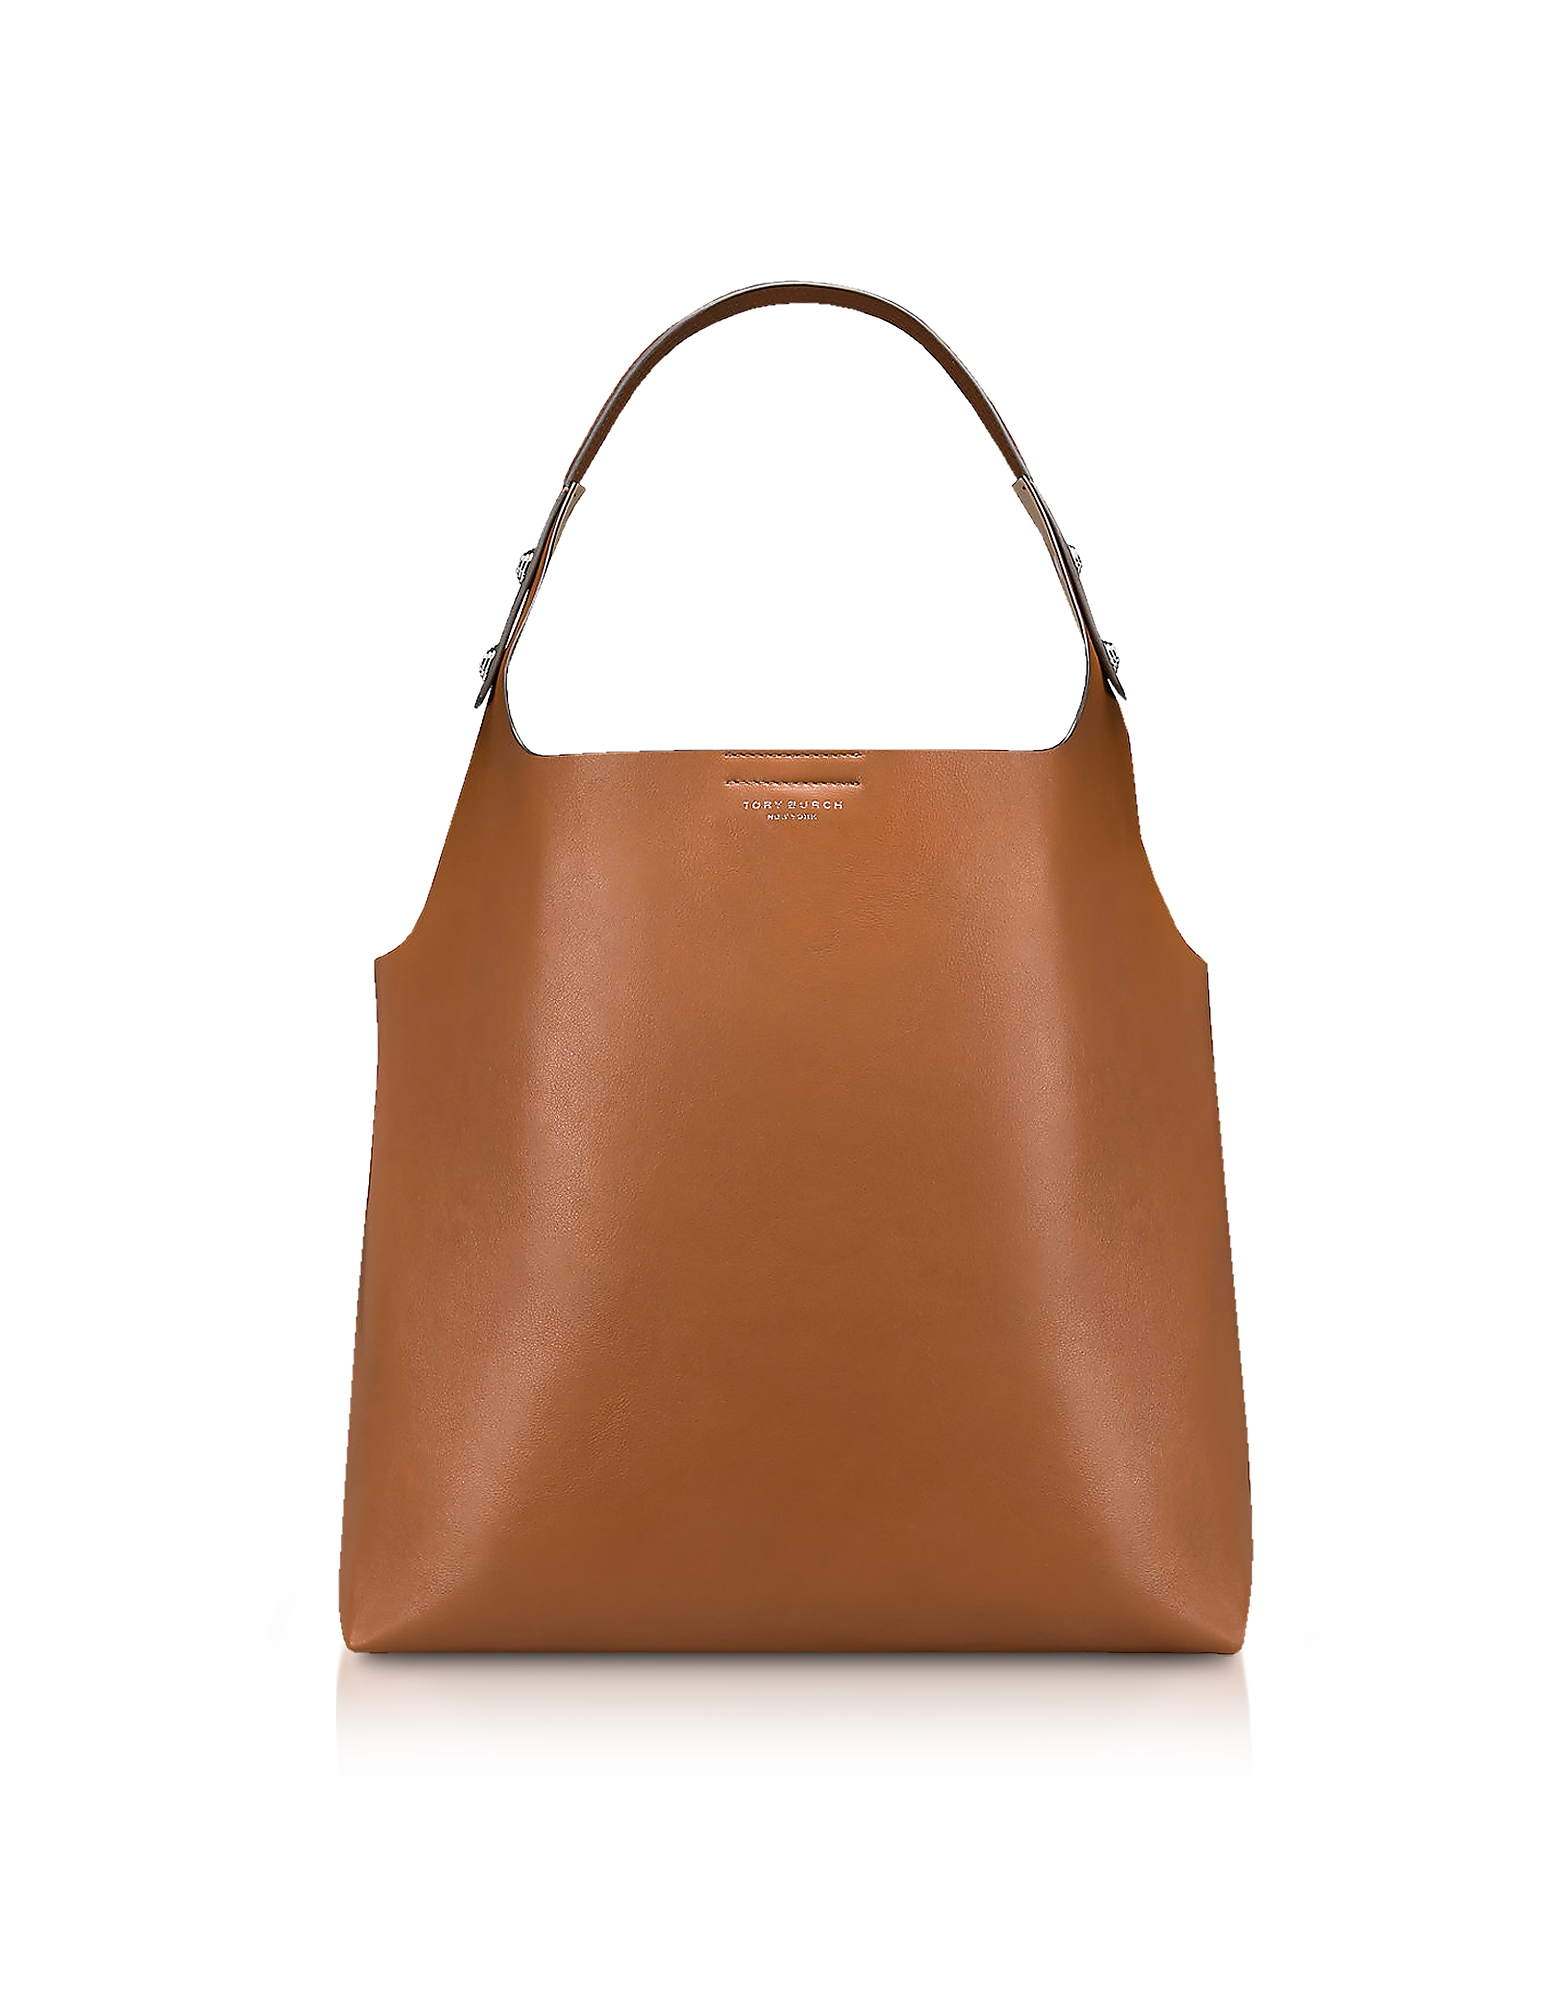 Rory Light Umber Leather Tote Bag